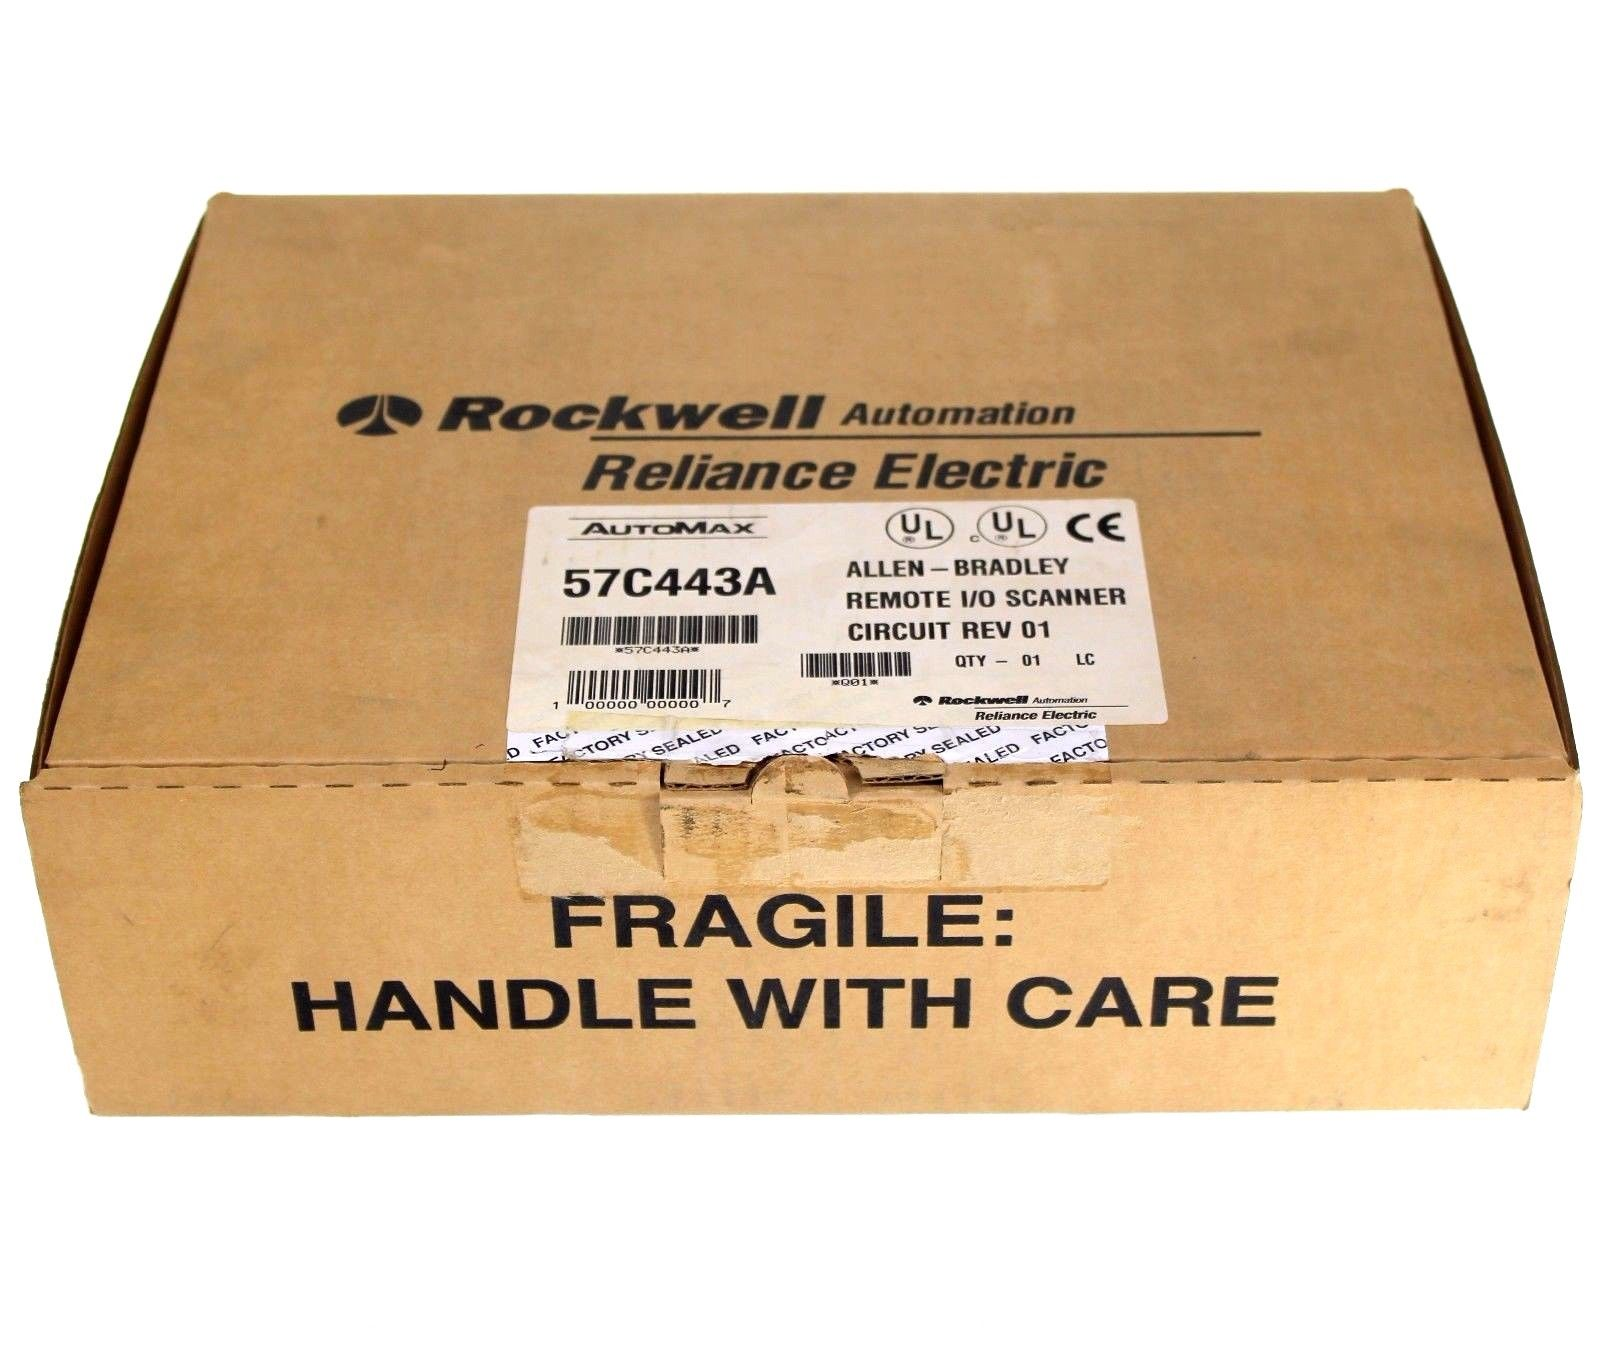 NEW Allen Bradley Reliance Electric 57C443A Automax Remote I/O Scanner